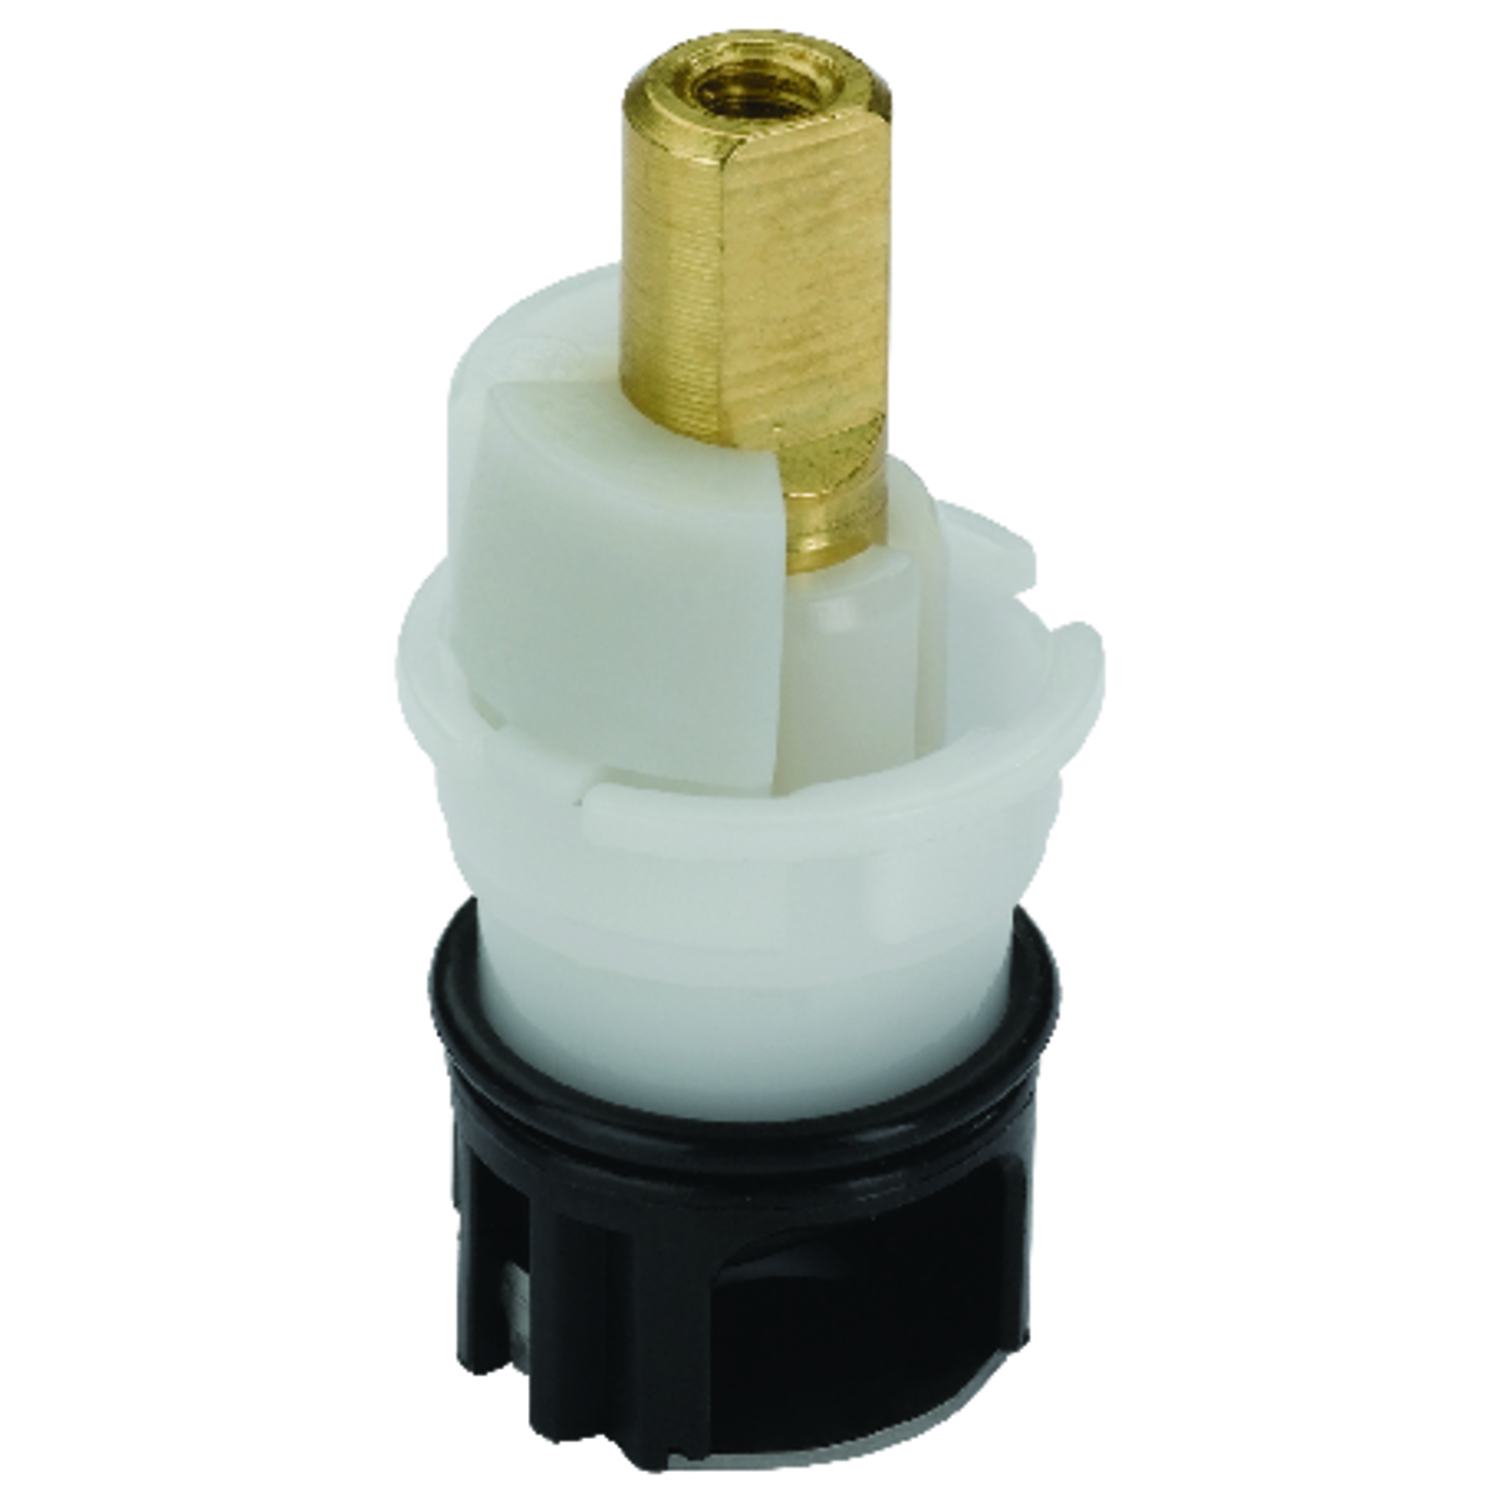 Delta Hot and Cold RP25513 Faucet Stem For Delta - Ace Hardware